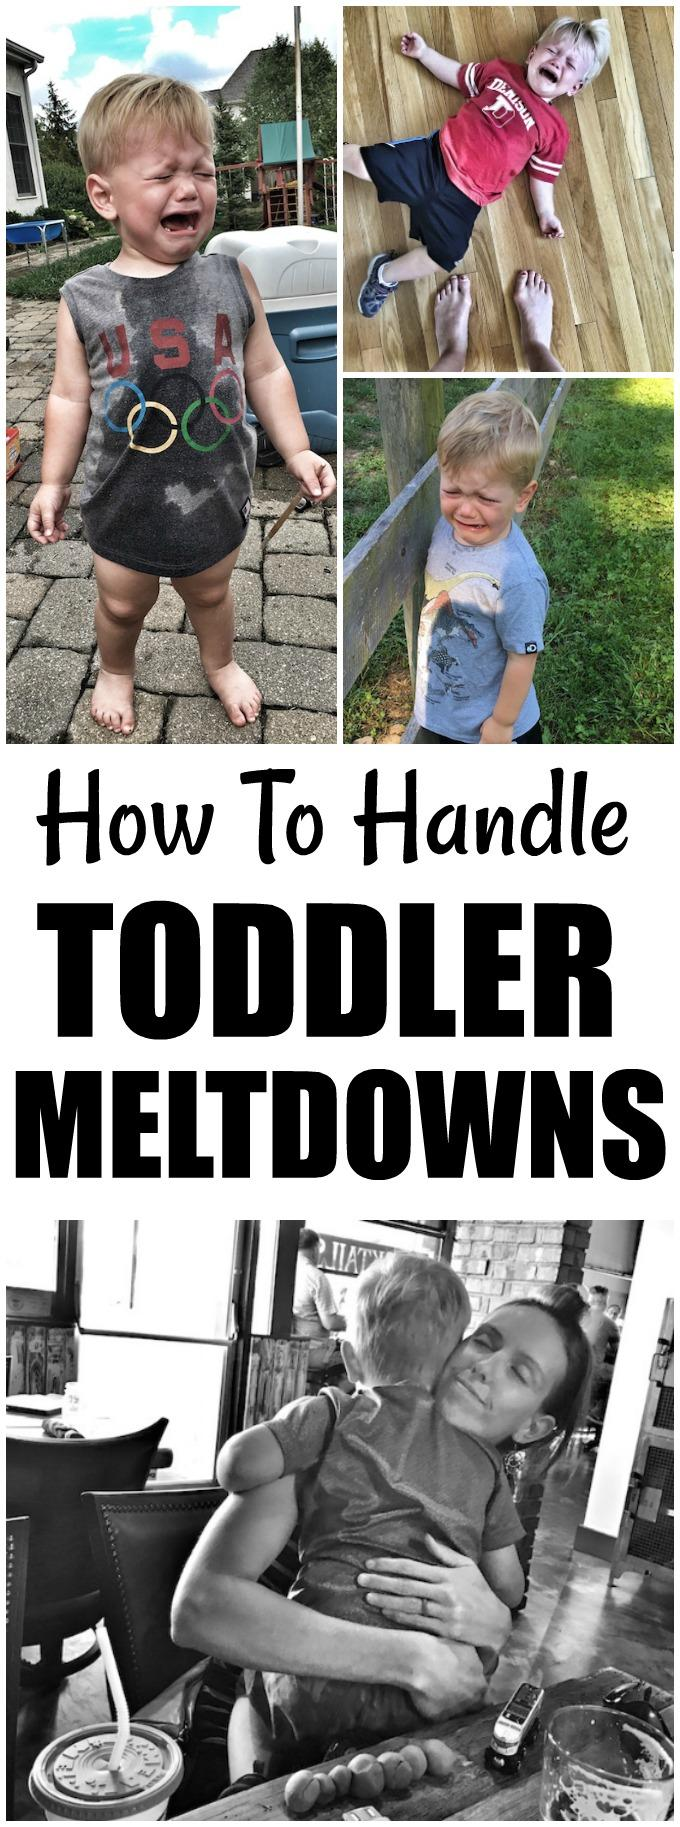 Learn how to handle toddler meltdowns in a way that's healthy for the child and the parents!